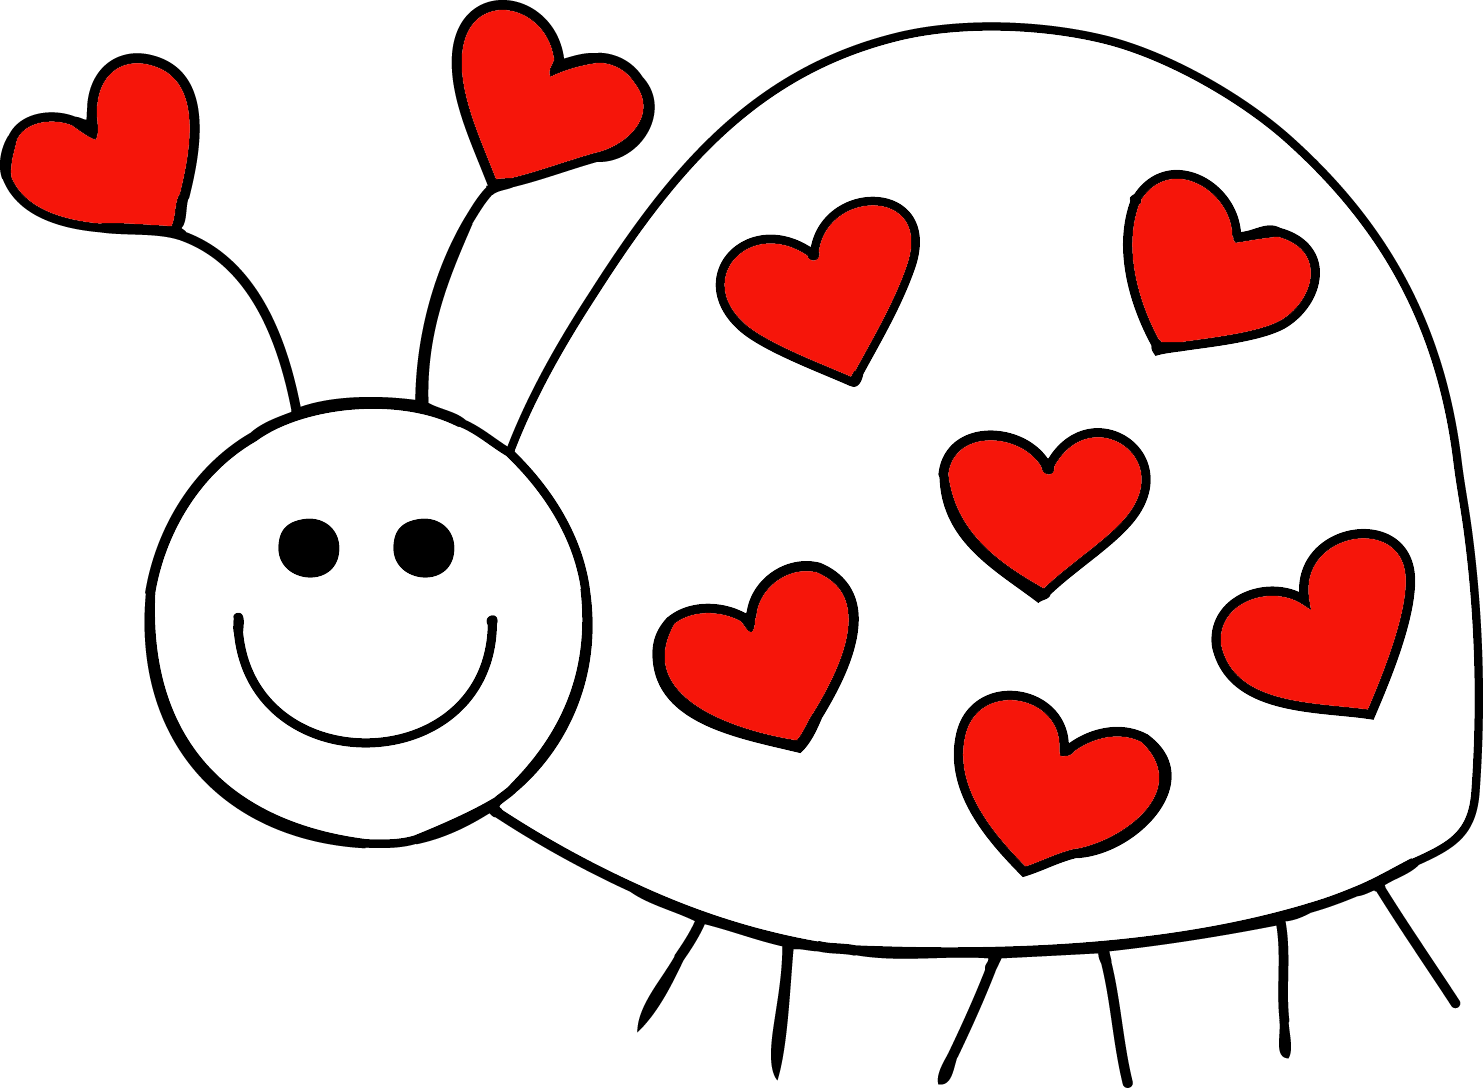 png free stock Hearts in a row. Bug clipart black and white